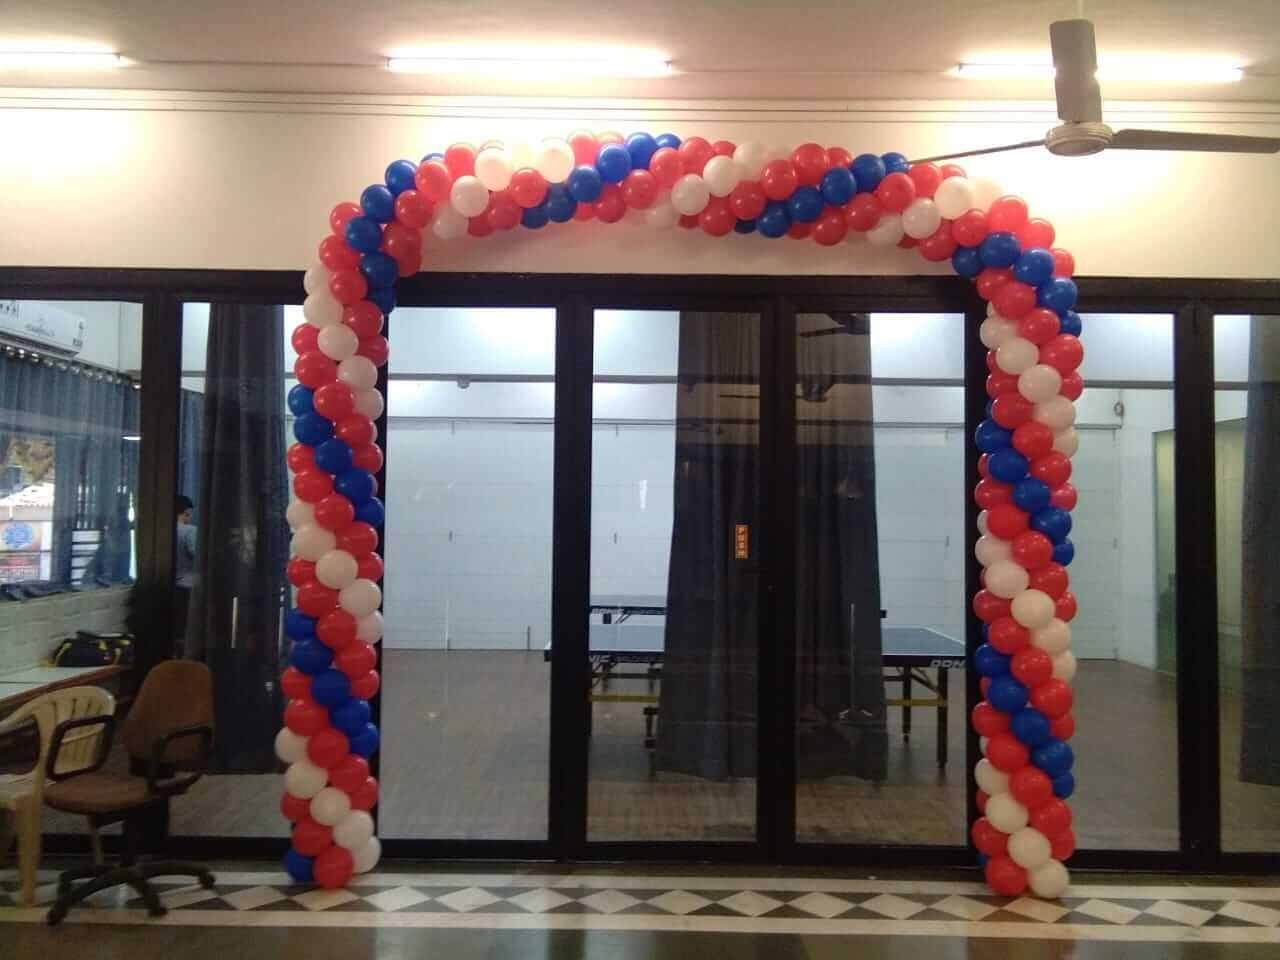 decoration-balloons-office